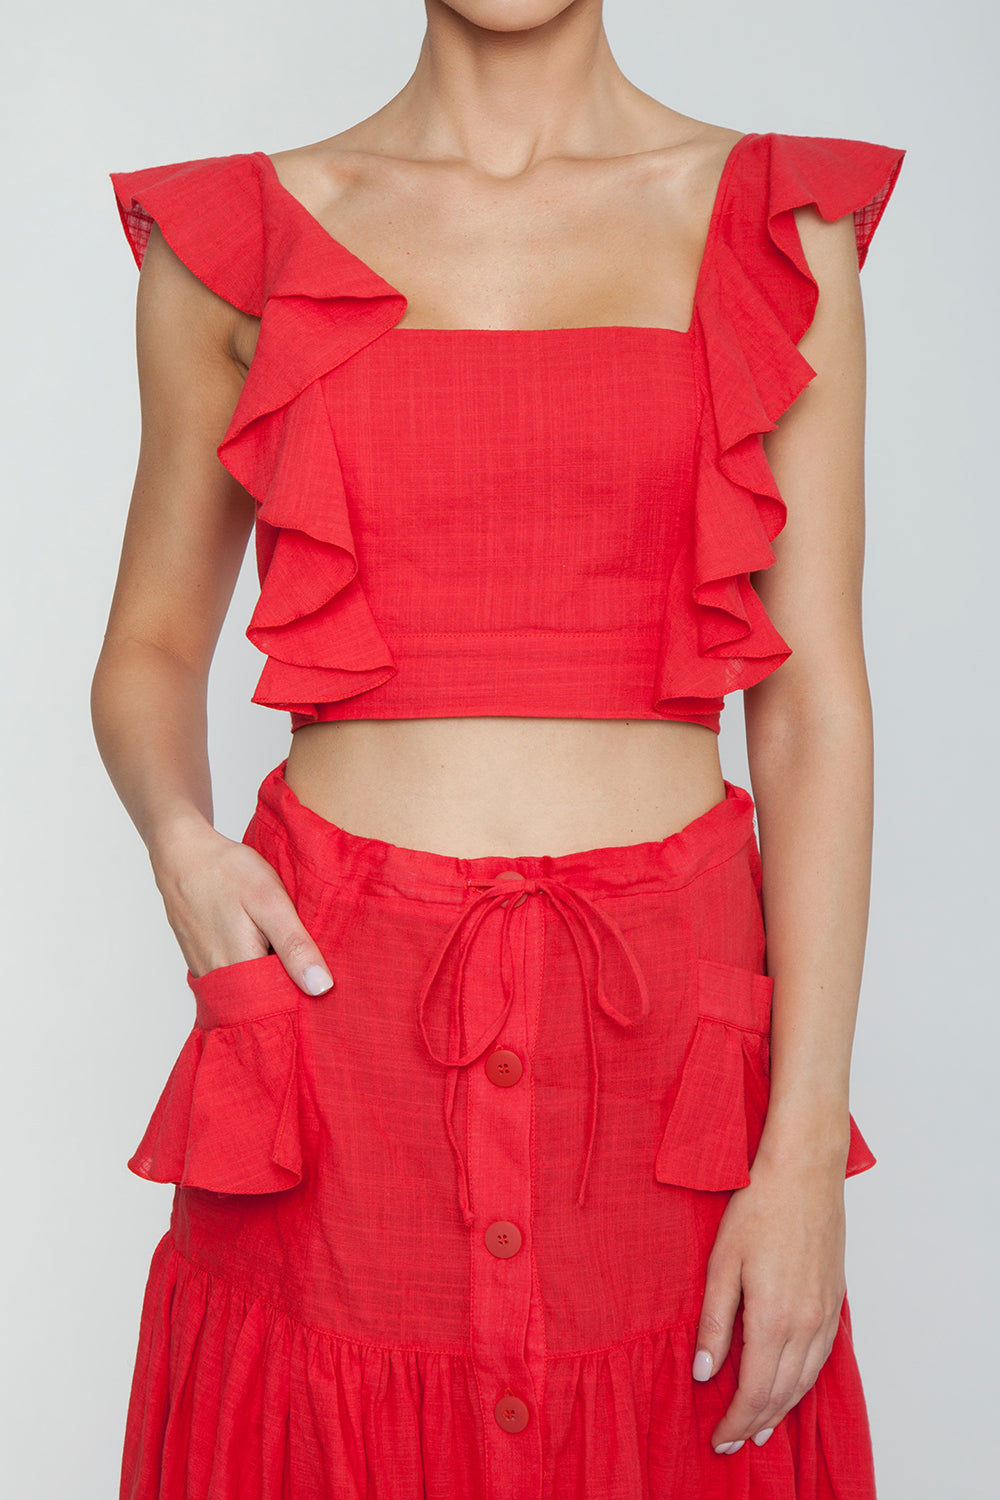 CLUBE BOSSA Lubba Cropped Blouse - Pepper Red Top | Pepper Red| Clube Bossa Lubba Cropped Blouse - Pepper Red. Features:  Square neckline Ruffle shoulders Back lace-up fastening 100% Cotton Detail View